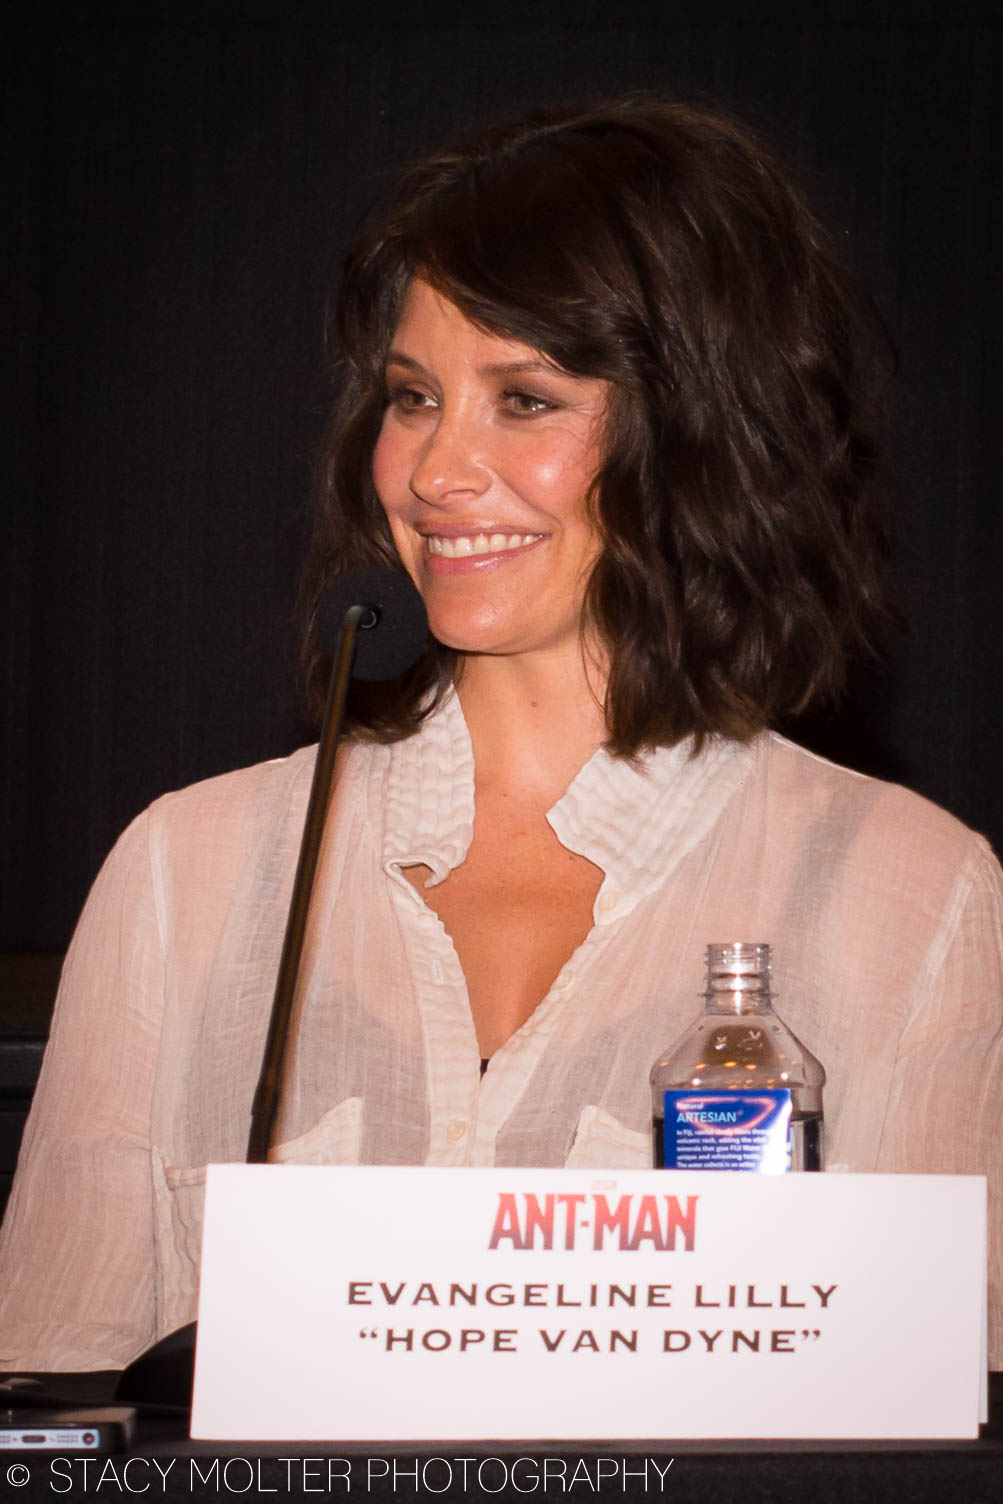 Evangeline Lilly - Ant-Man Press Conference